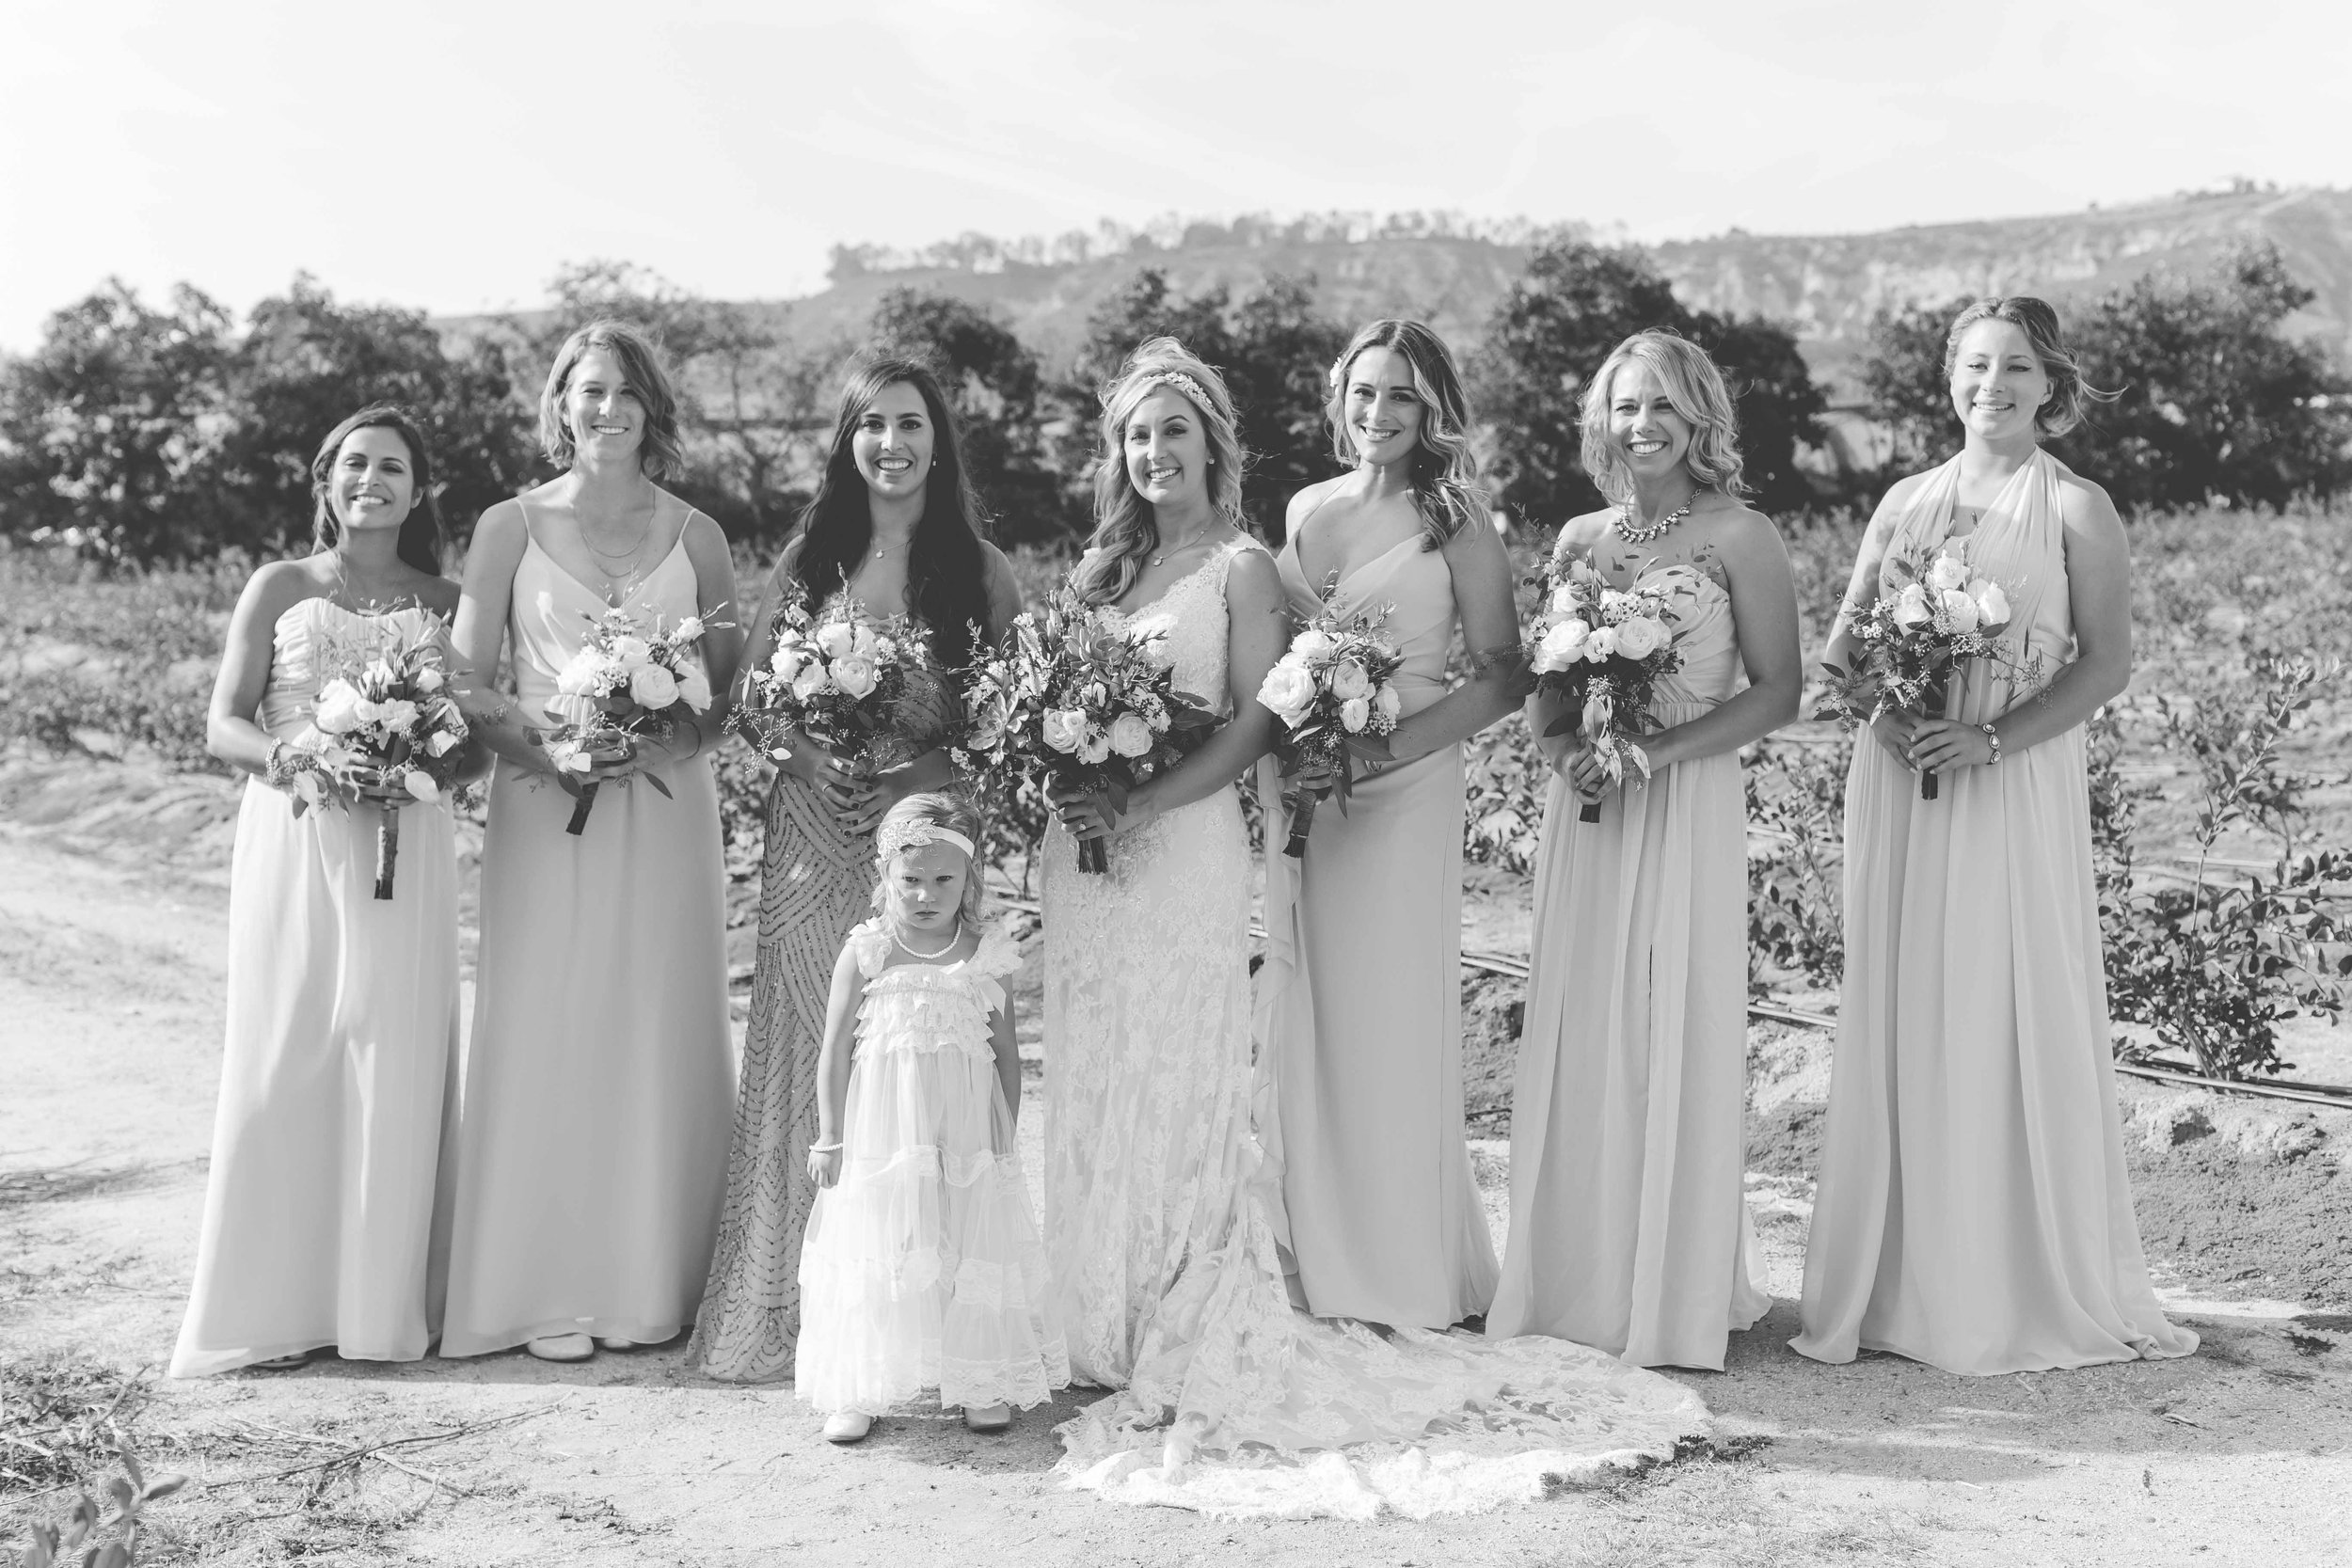 2015-Perkinson-Wedding-GerrysRanch-0086-web.jpg